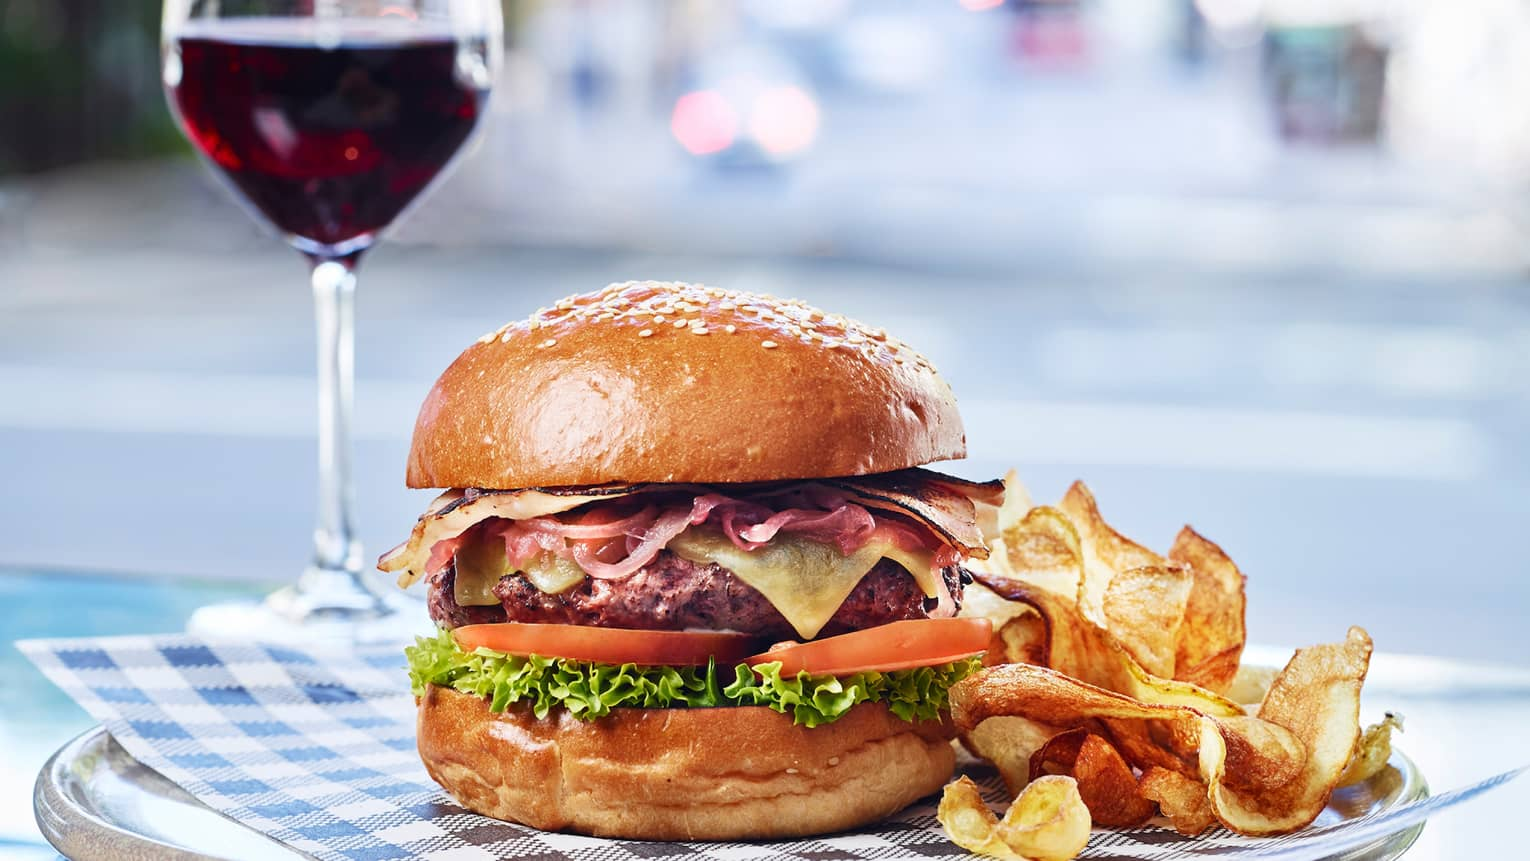 Grain Burger on plate with fresh potato chips, glass of red wine